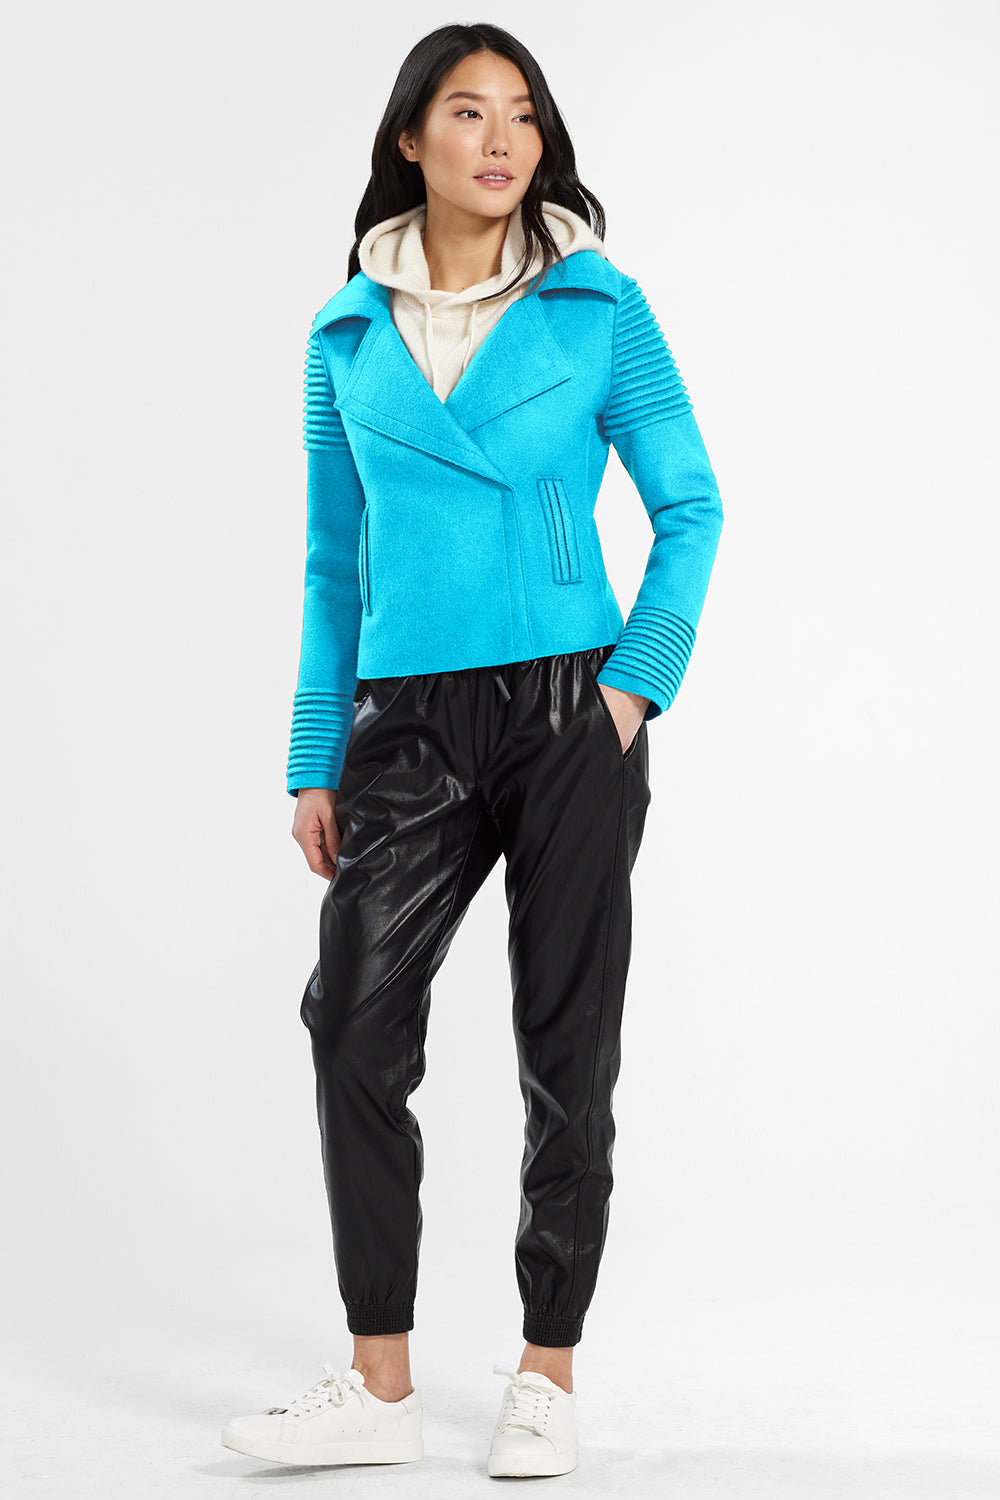 Sentaler Bomber Jacket with Ribbed Shoulders and Cuffs featured in Superfine Alpaca and available in AI Aqua. Seen from front.